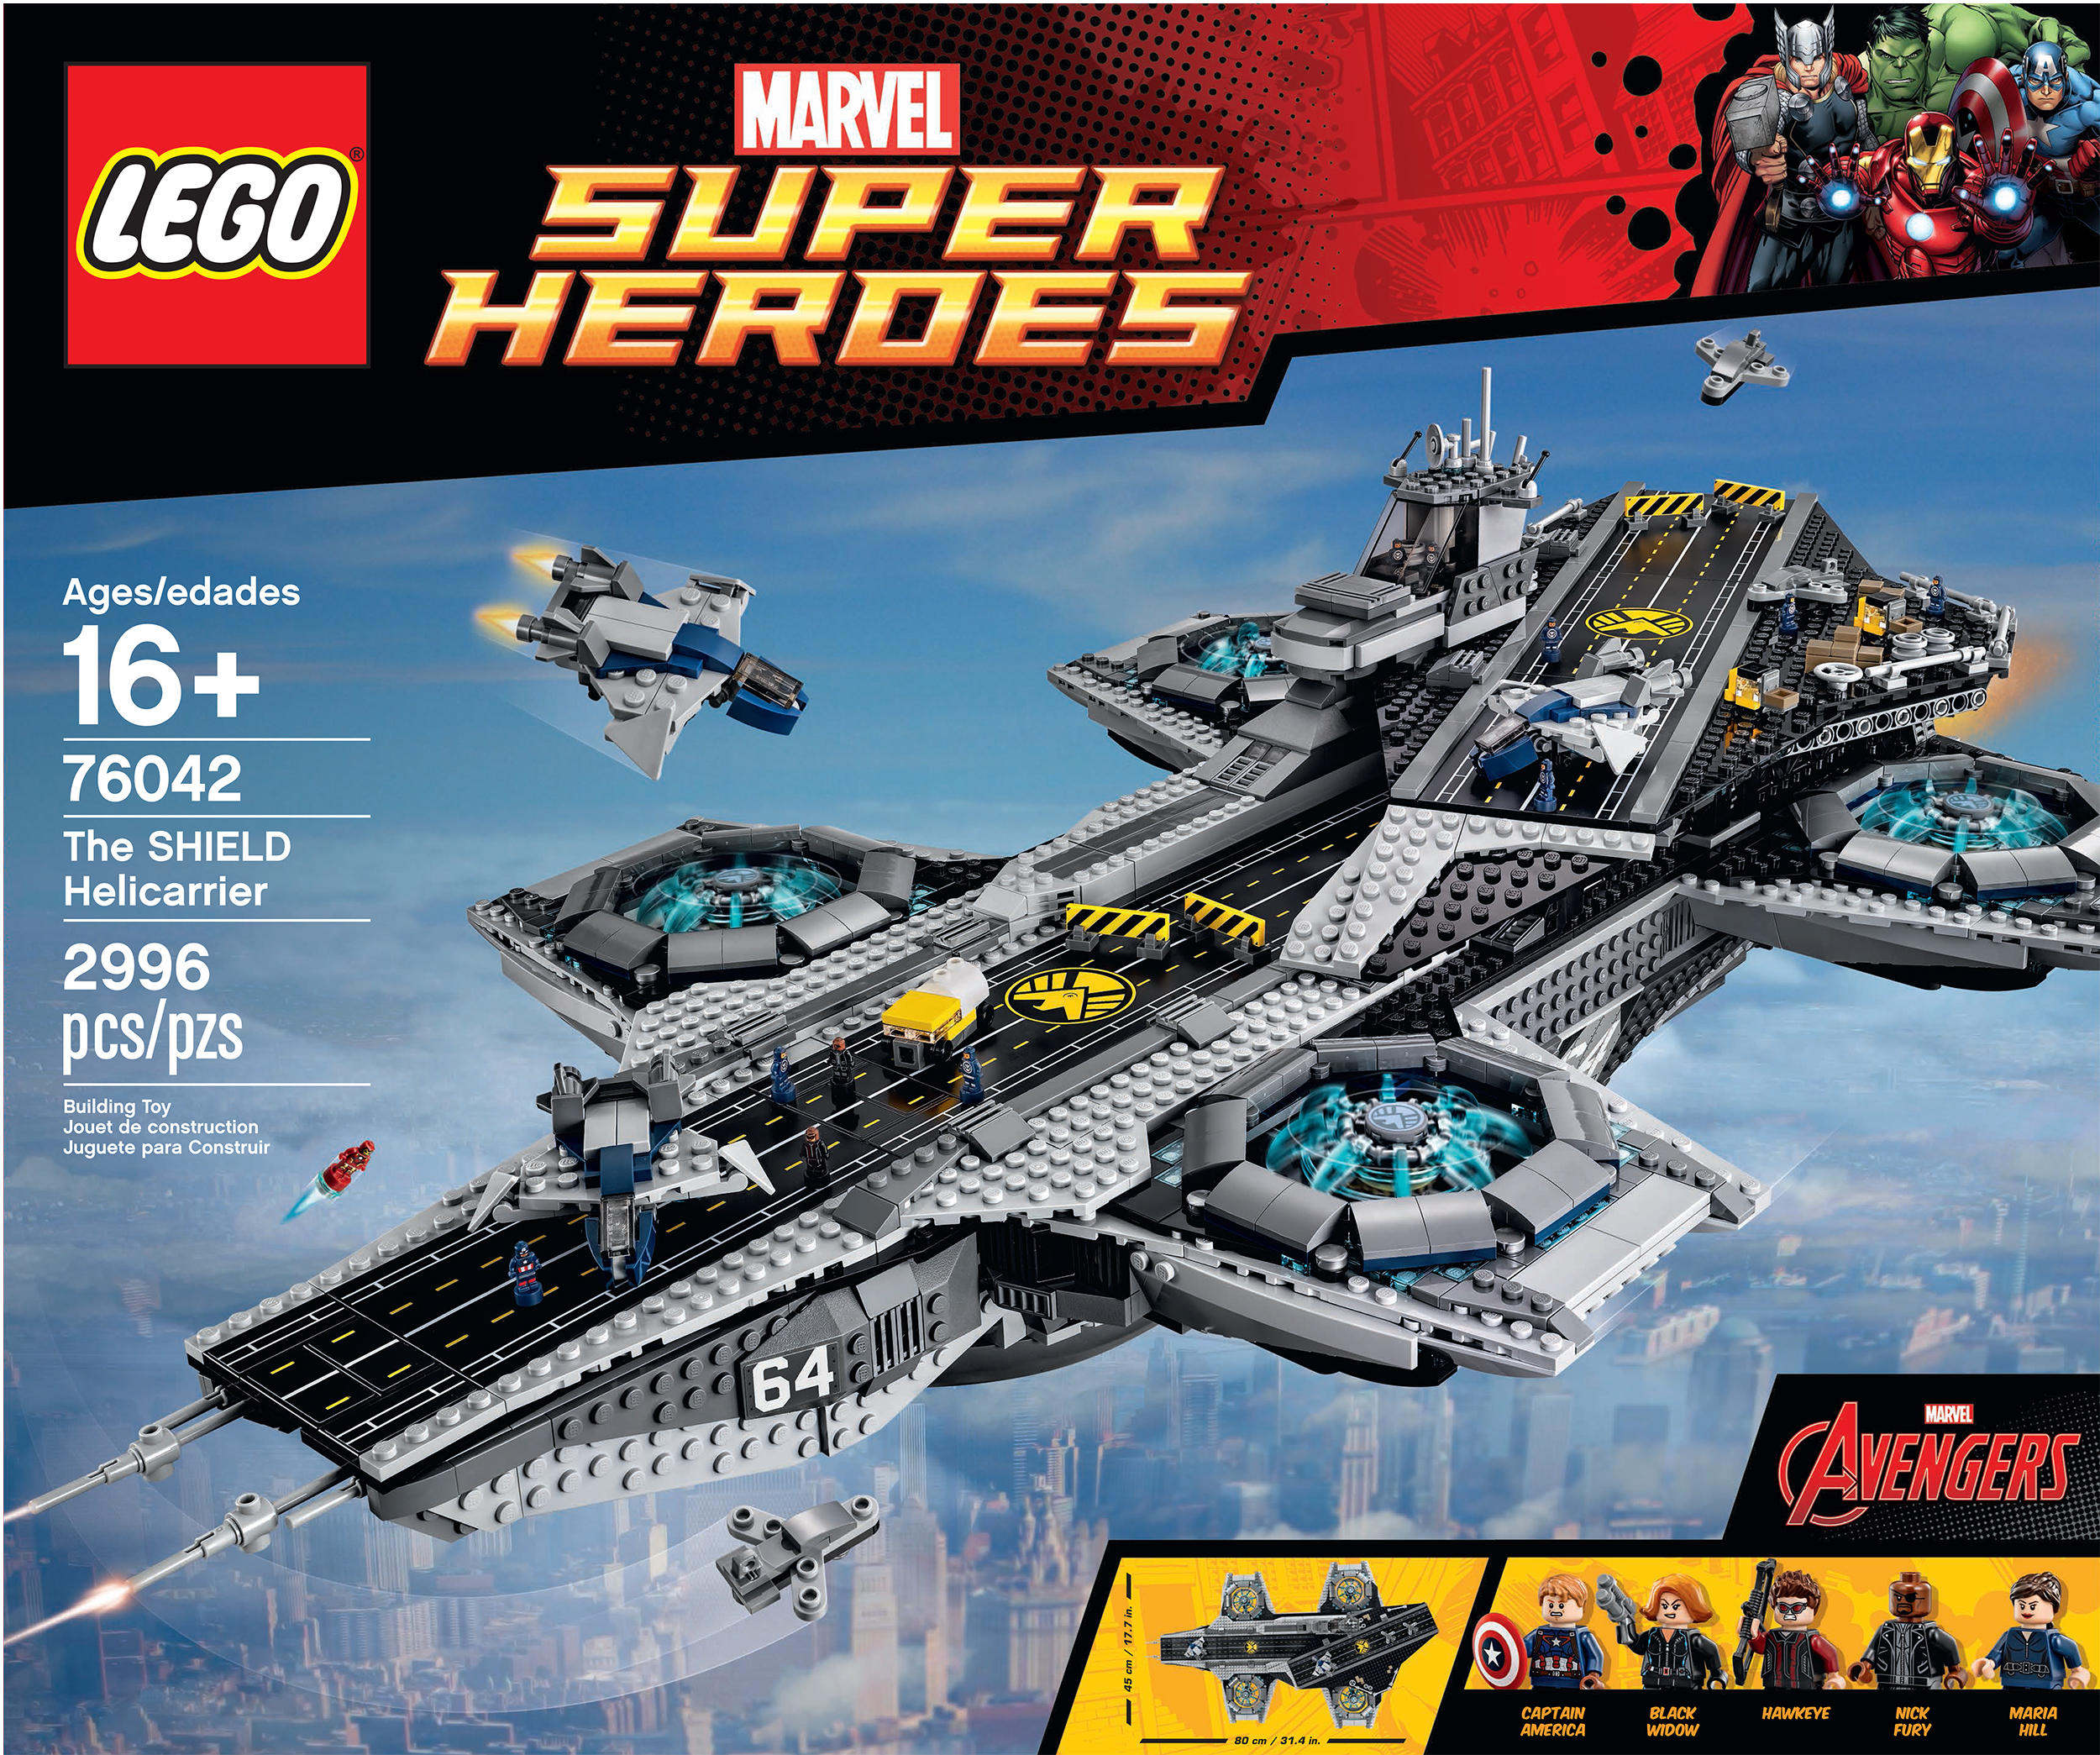 LEGO Winter Soldier Soldier polybag available with SHIELD ...